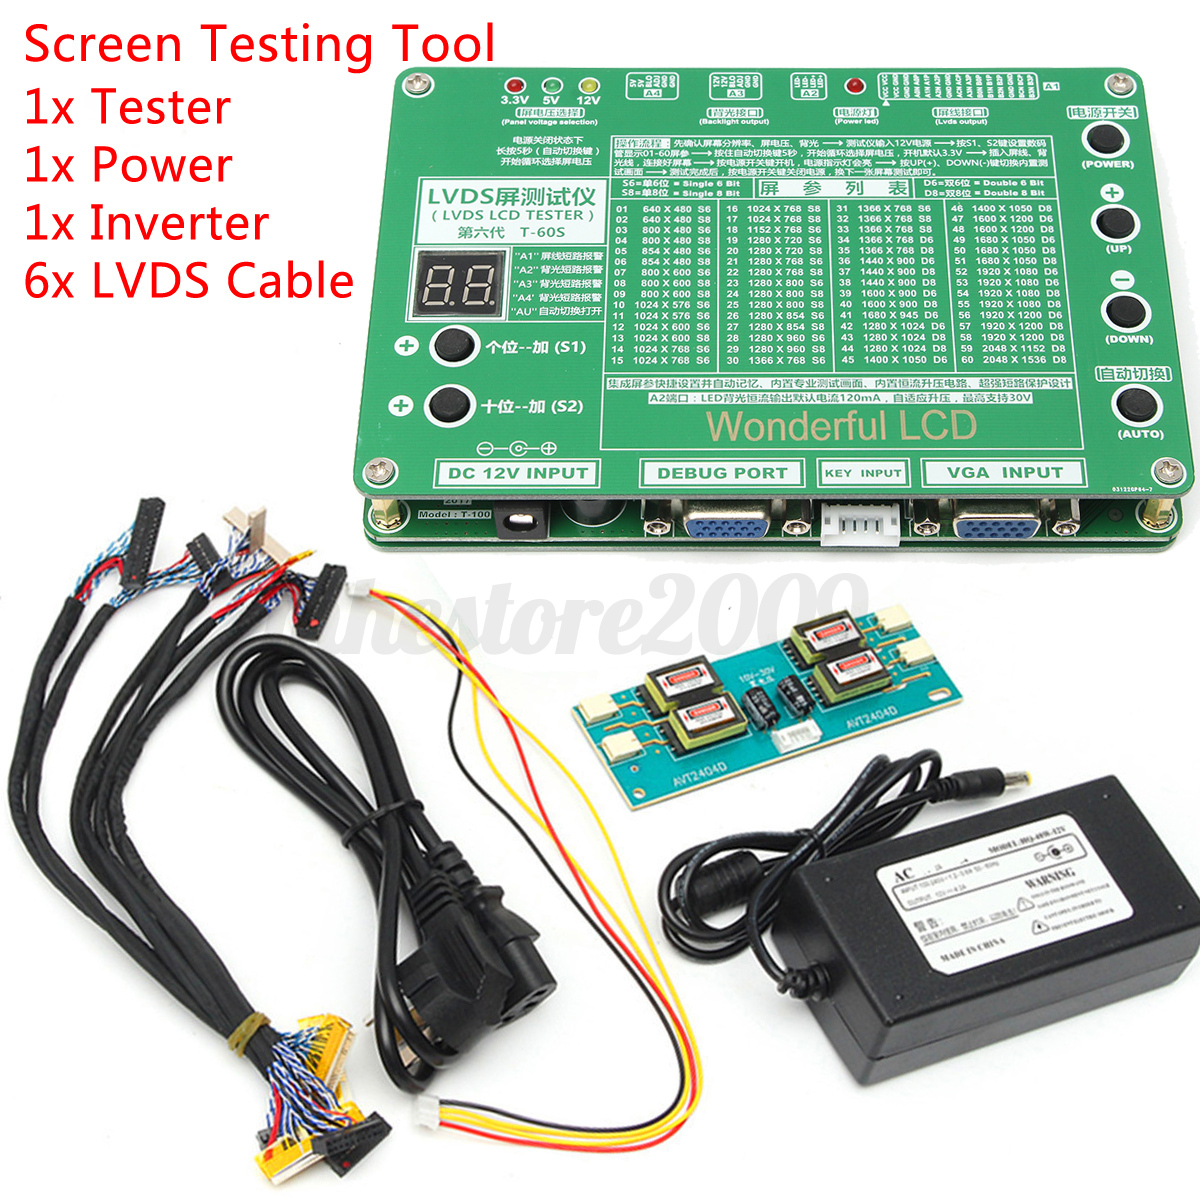 Led Panel Test Laptop Lcd Led Panel Repair Tool Kit Tv Screen Tester 4314x